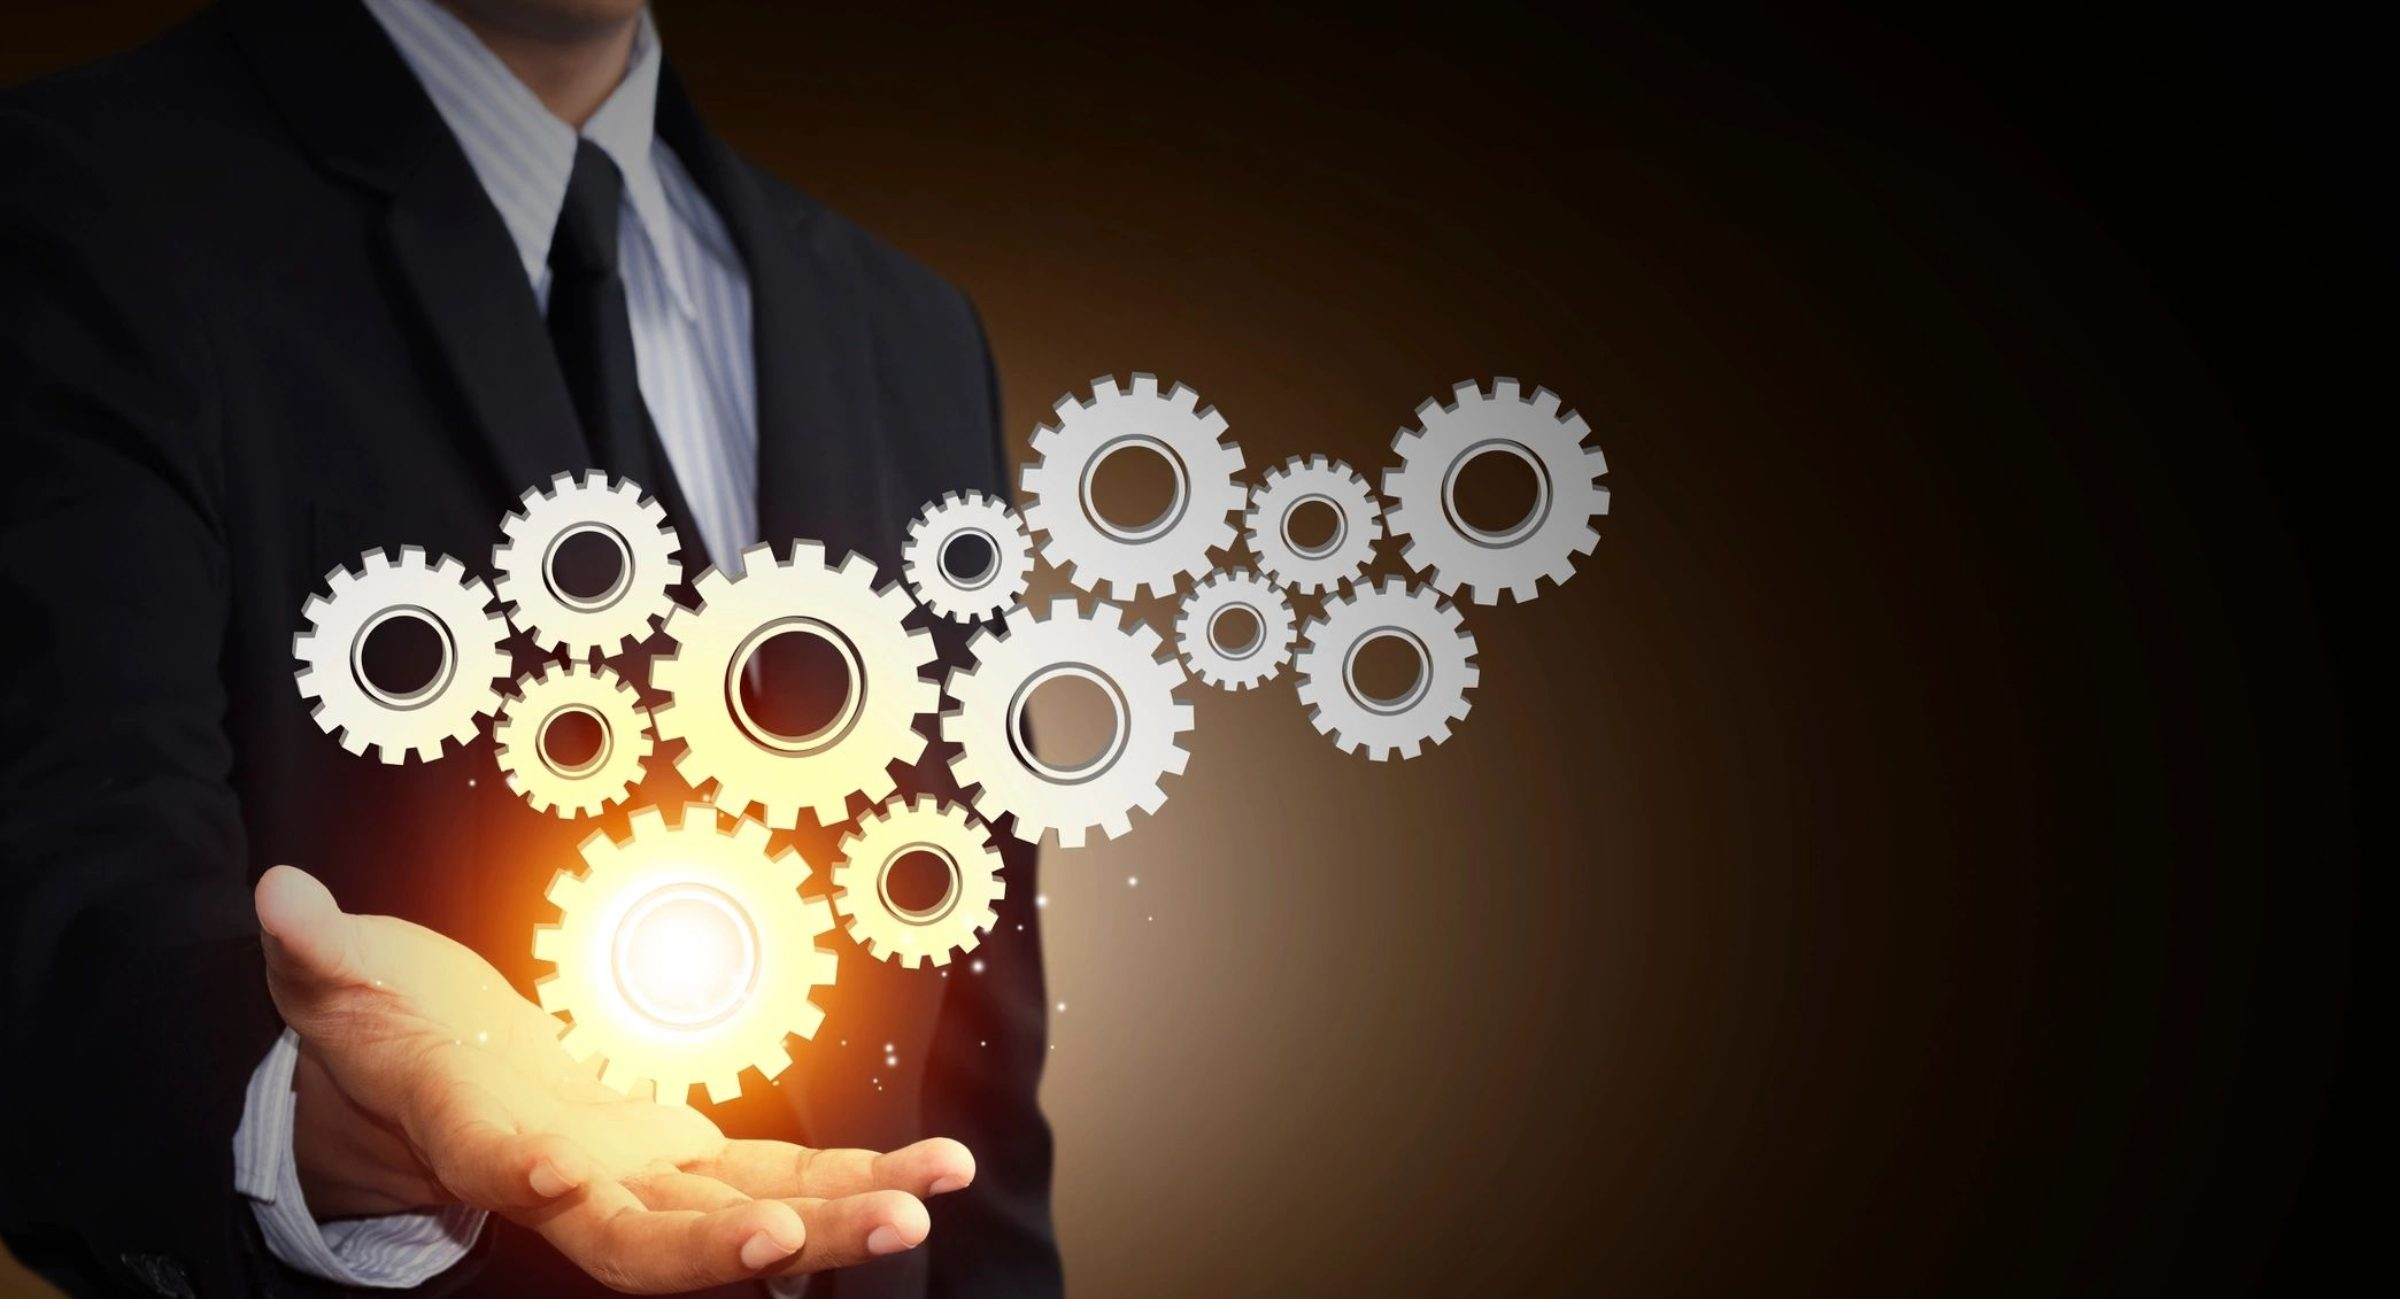 Enterprise & System of Systems Engineering